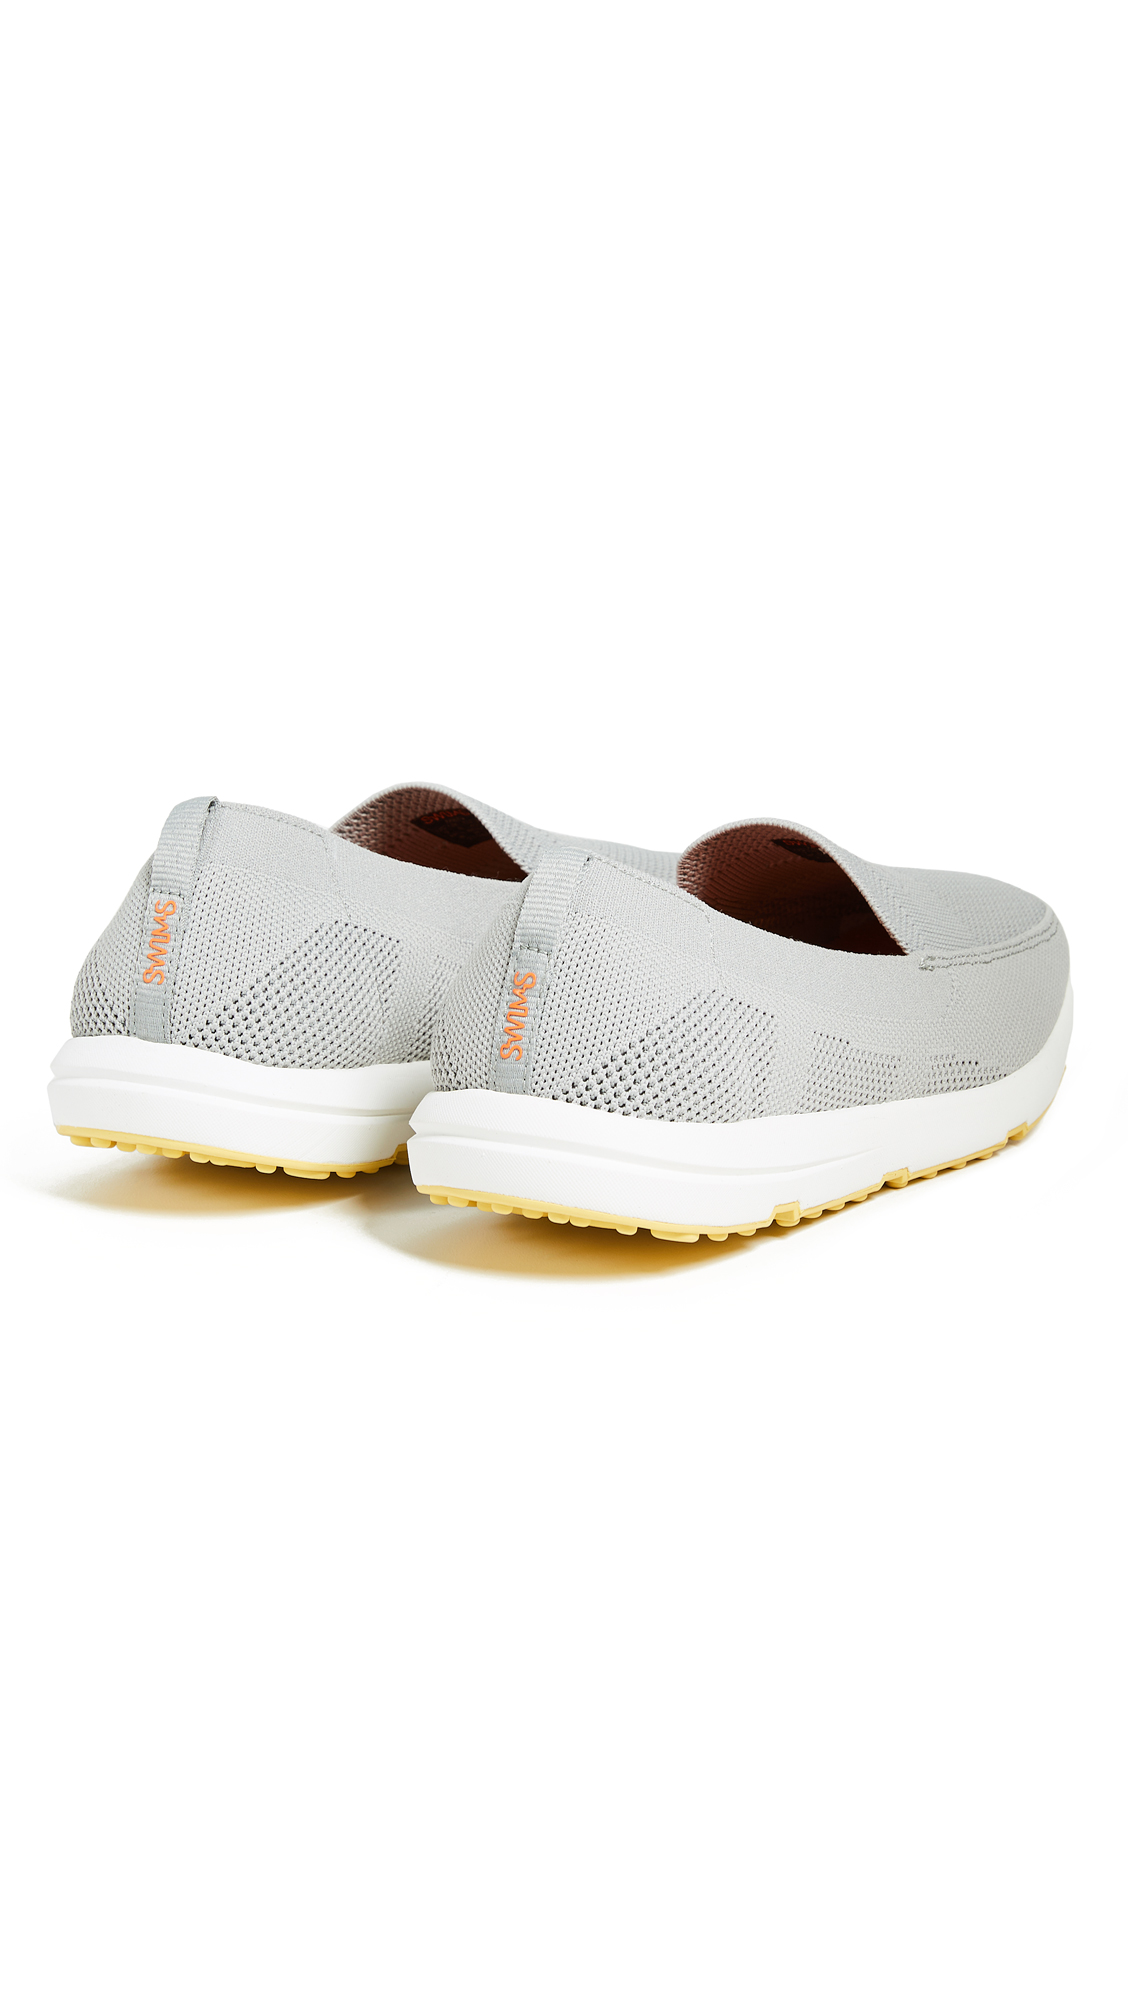 d3989532b53 SWIMS Breeze Leap Knit Penny Loafers